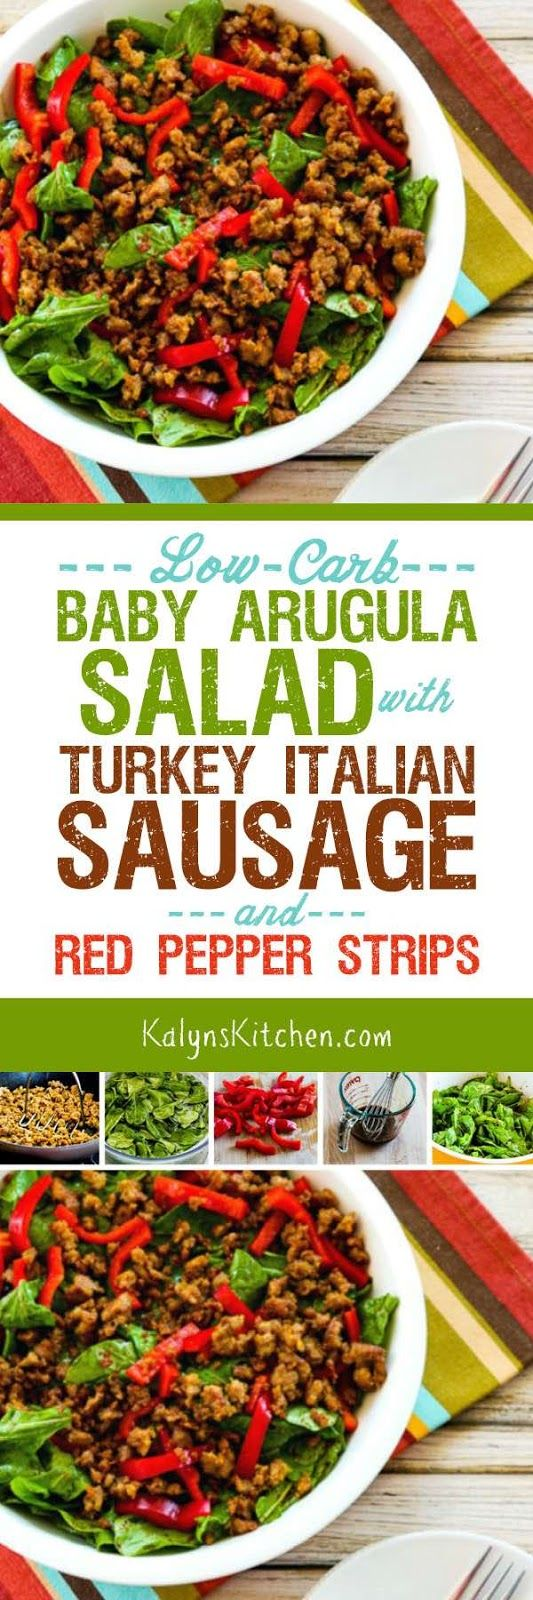 Low-Carb Baby Arugula Salad with Turkey Italian Sausage and Red Pepper Strips is an unusual combination that absolutely works, and this tasty salad is also Keto, low-glycemic, gluten-free, dairy-free, and South Beach Diet friendly. [found on KalynsKitchen.com]